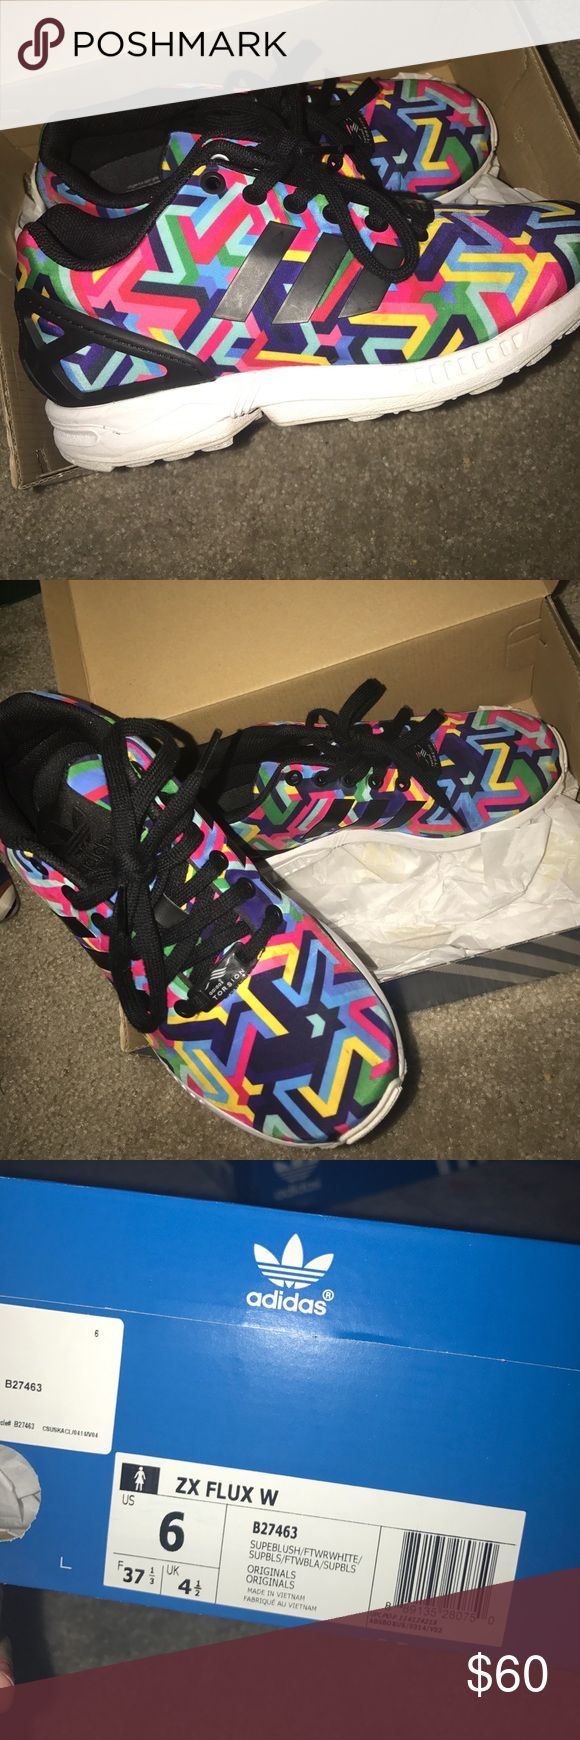 Adidas Flux EEEEEUC! Size 6, women's. Adidas Shoes Sneakers